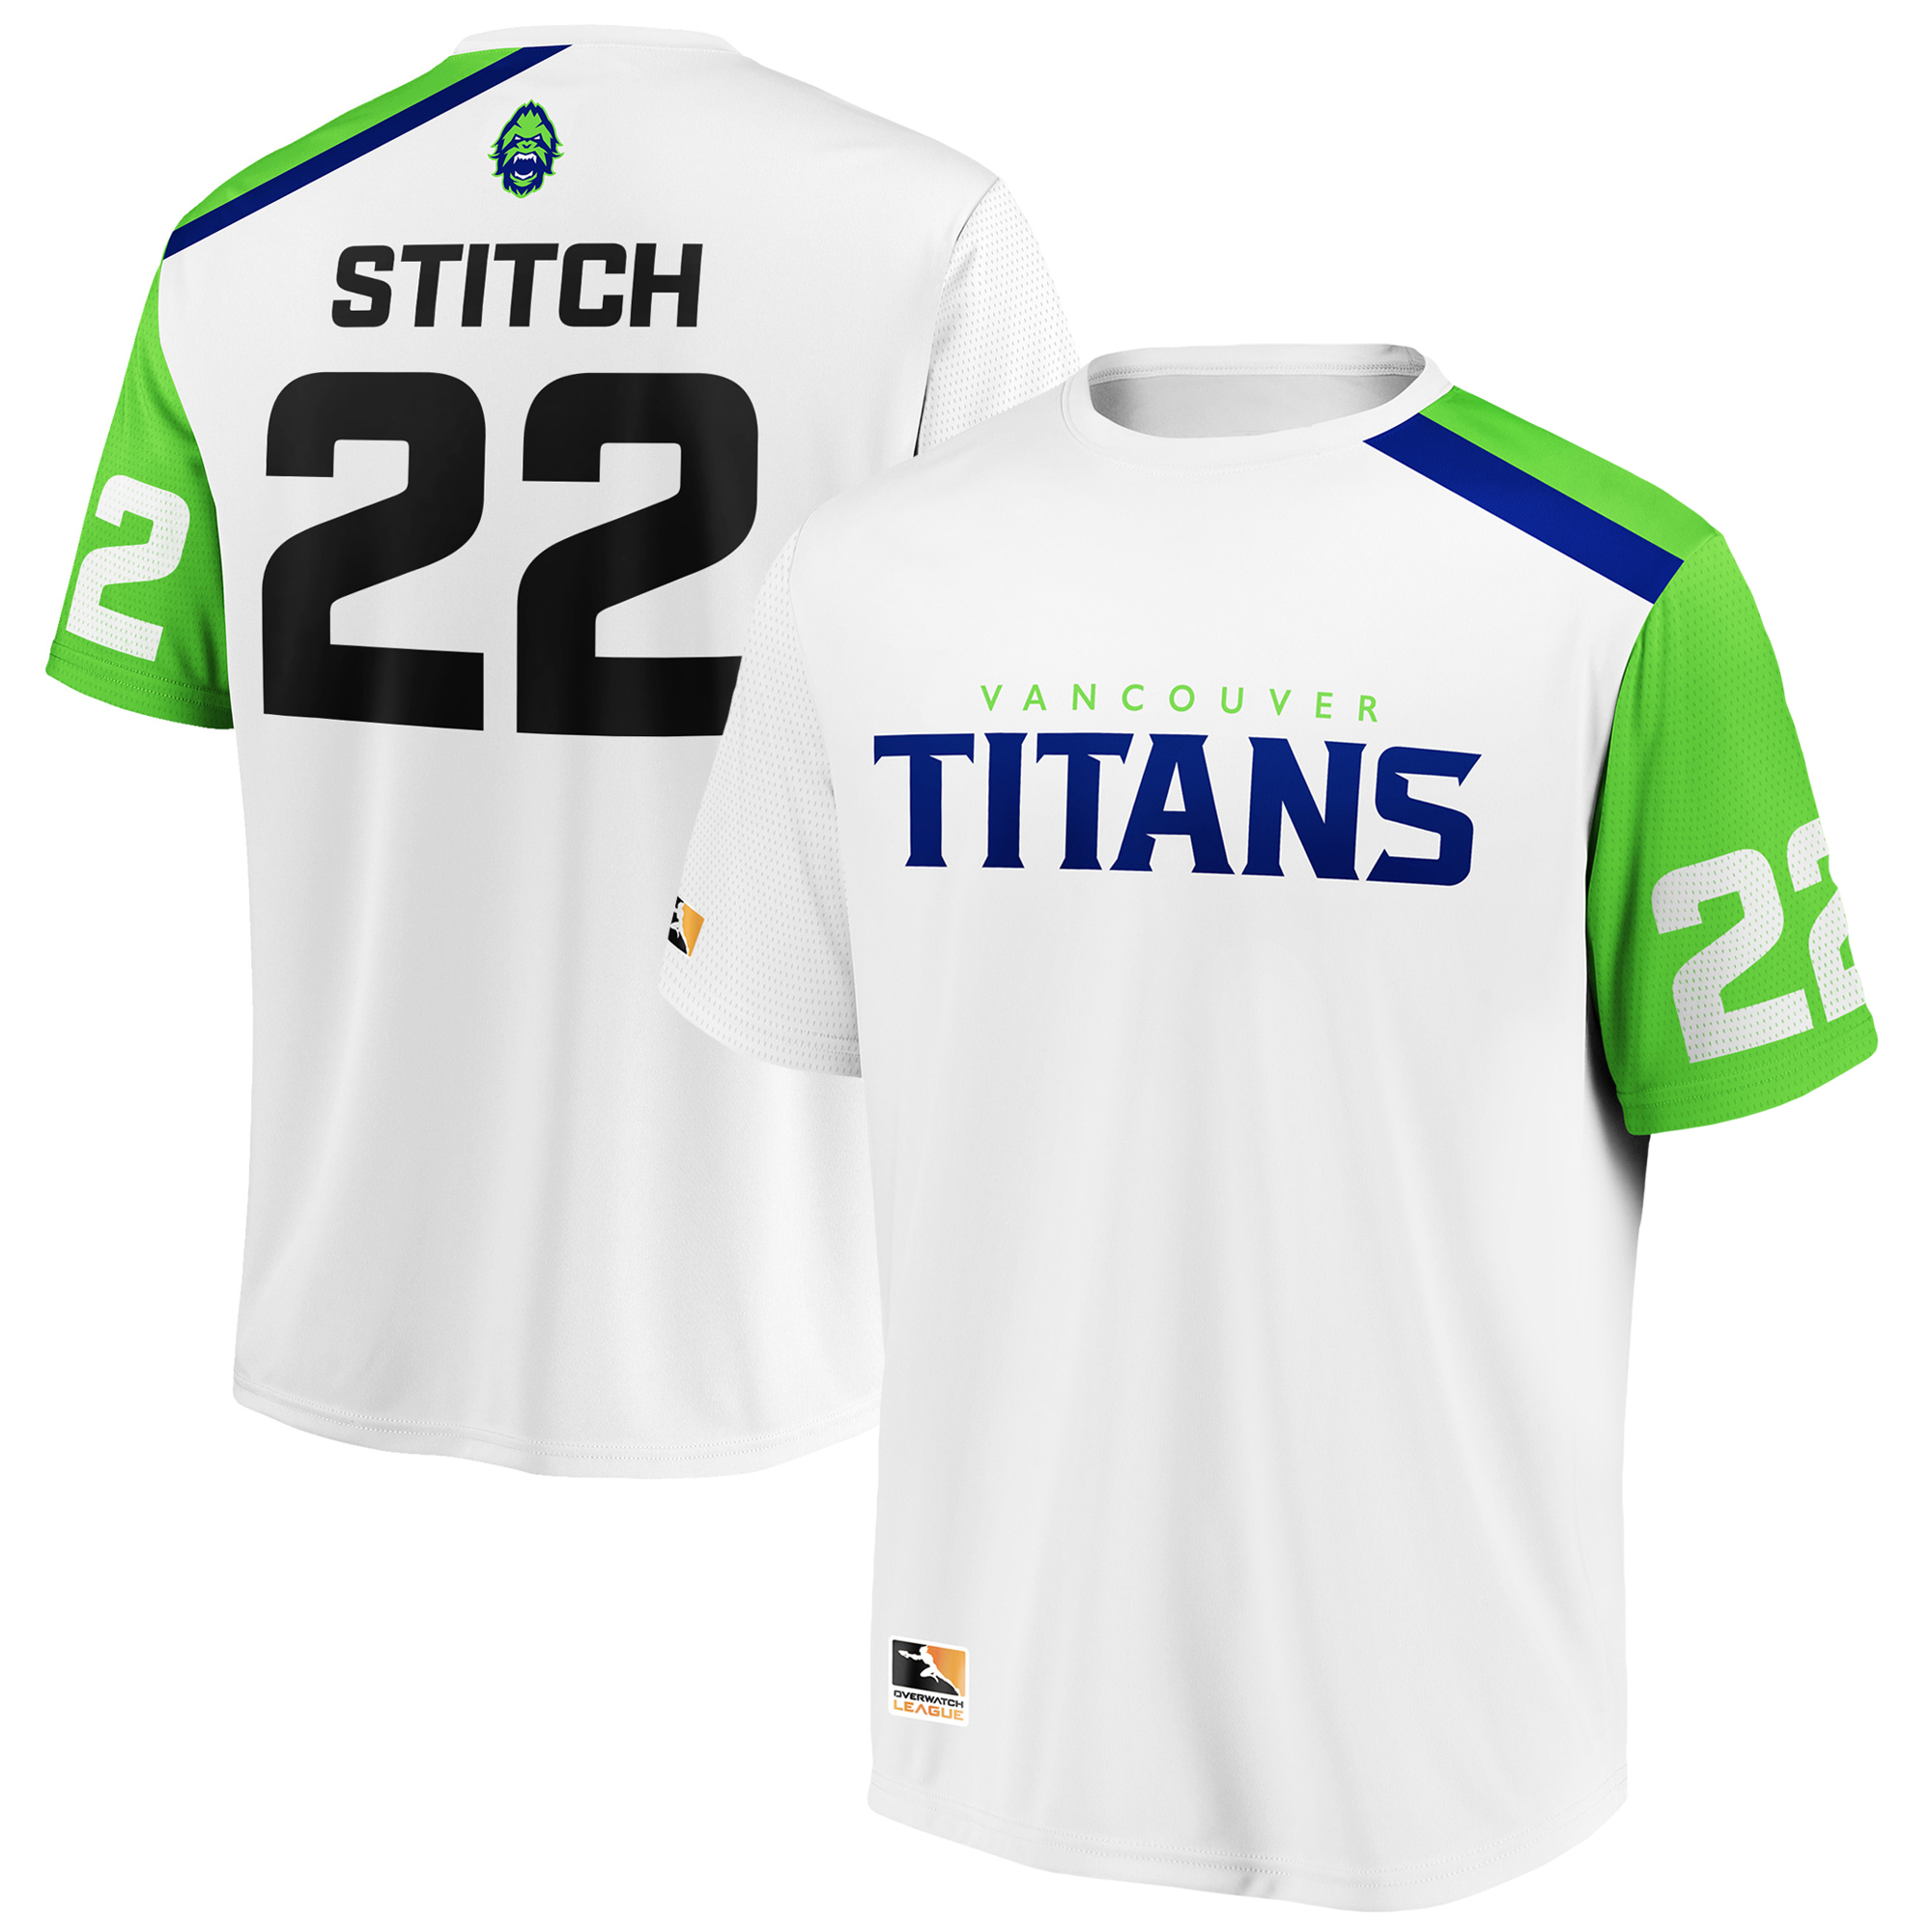 Stitch Vancouver Titans Overwatch League Replica Away Jersey - White